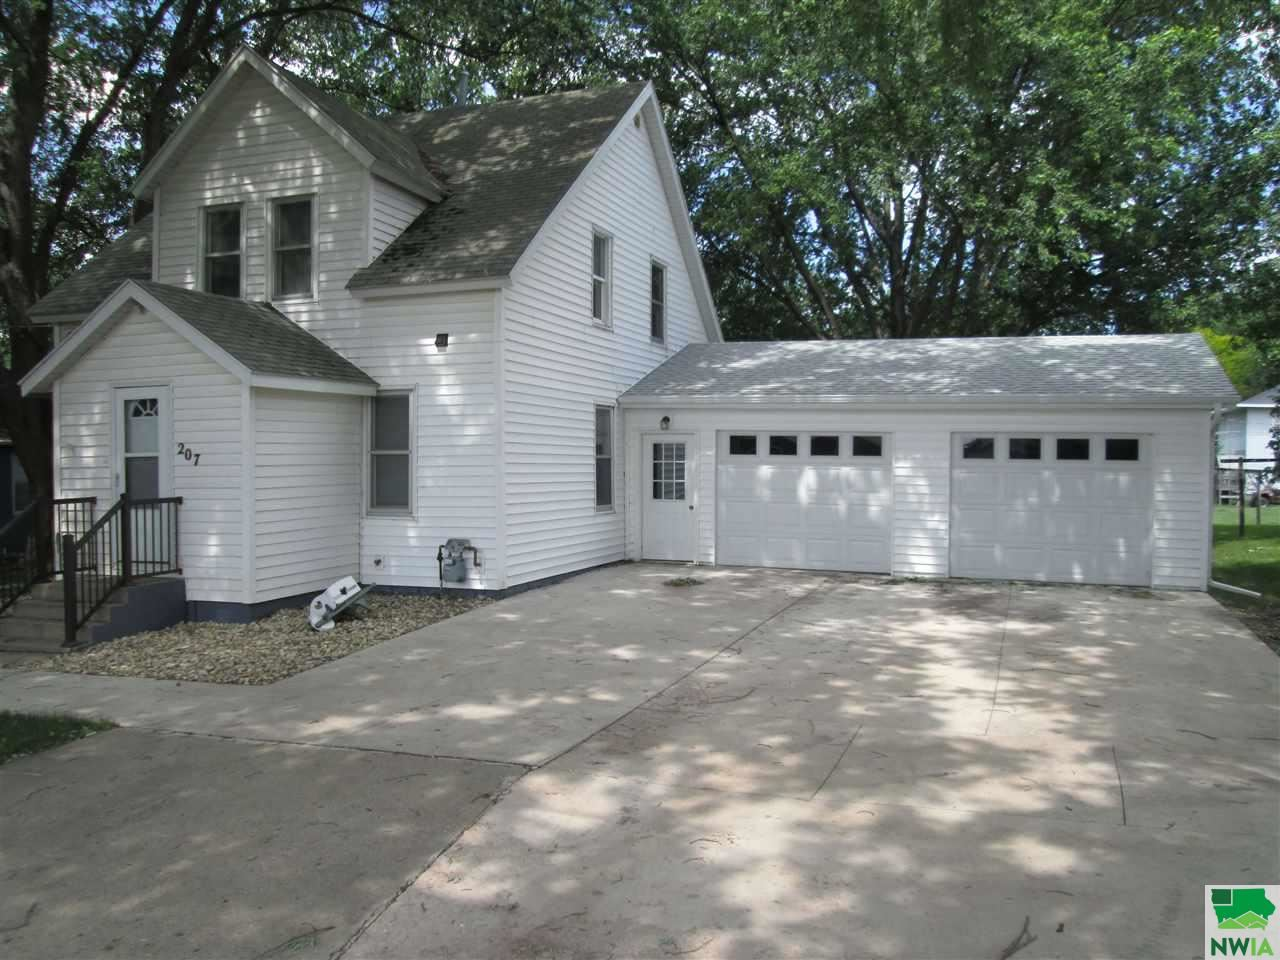 Photo for 207 N 6th Ave, Hospers, IA 51238 (MLS # 809544)